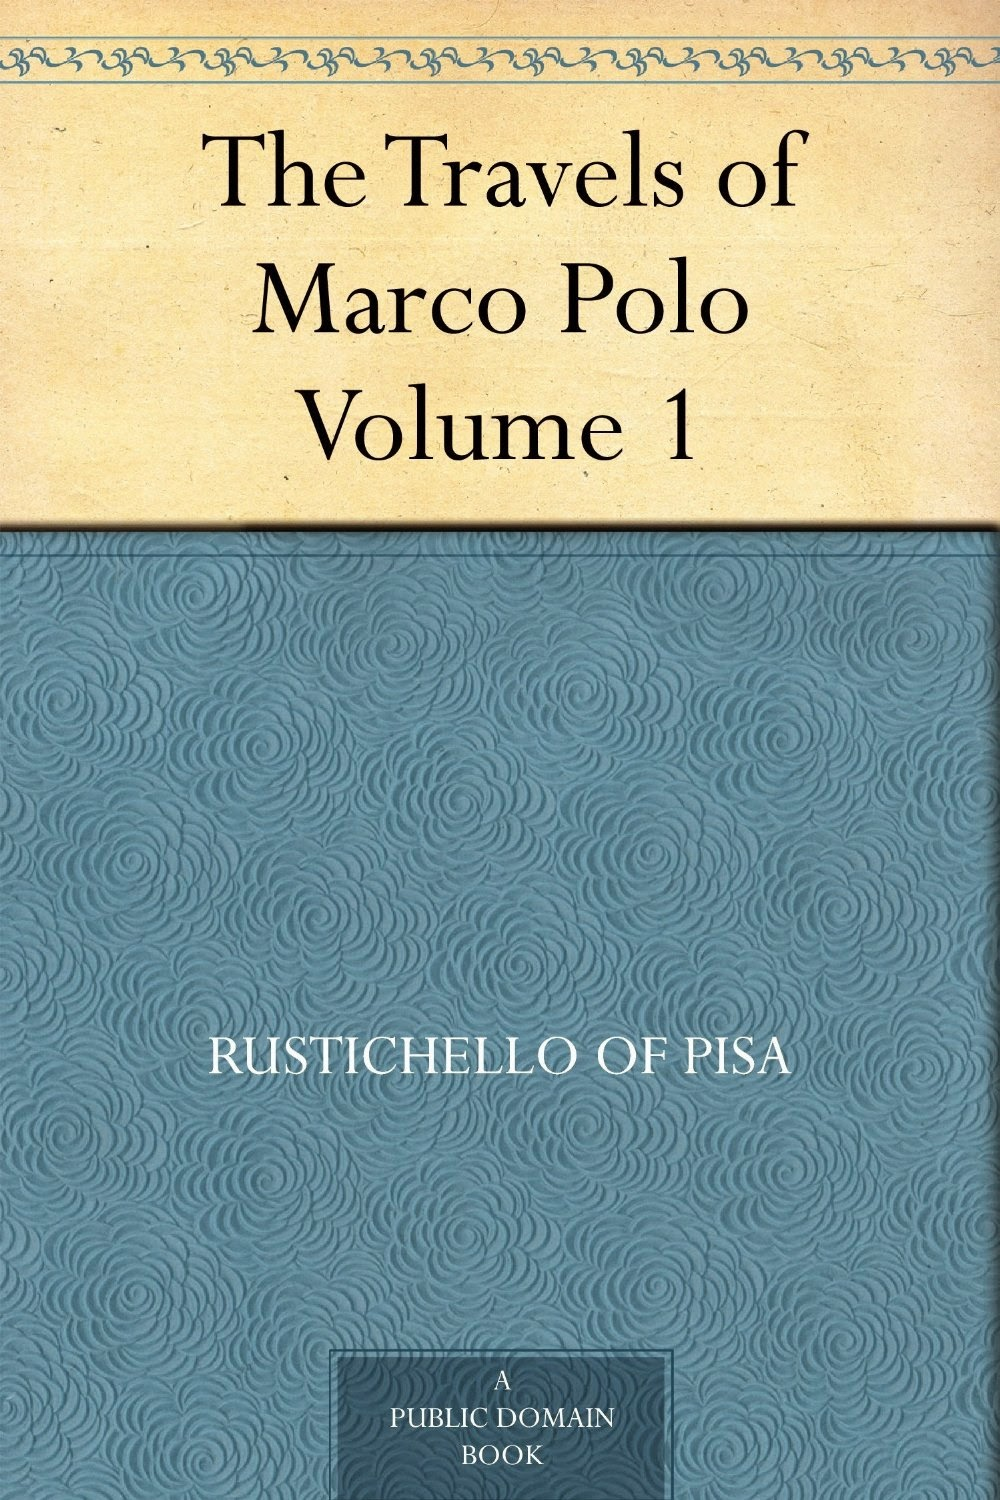 The Tour of All Tours: Marco Polo and The New Silk Road